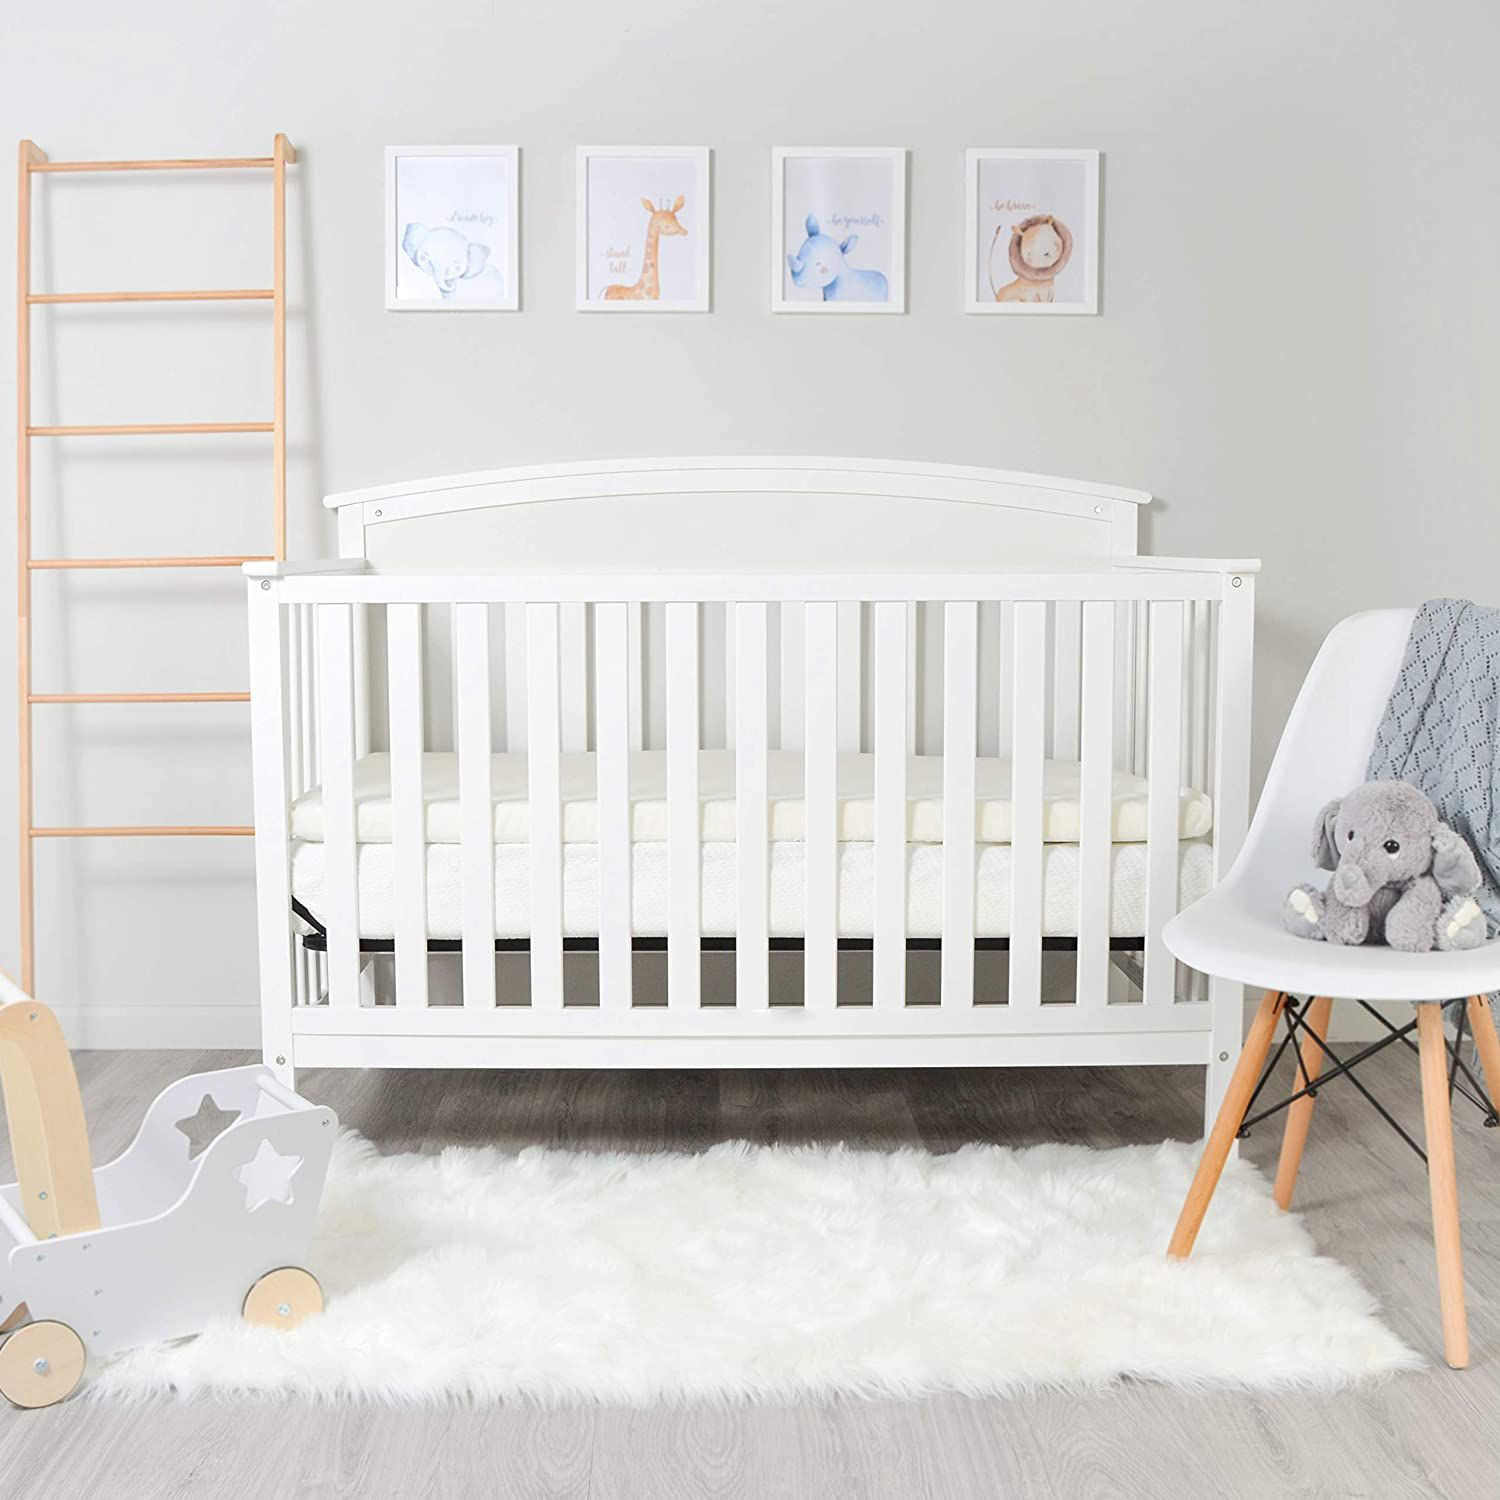 Milliard 2-Inch Ventilated Memory Foam Crib and Toddler Bed Mattress Topper